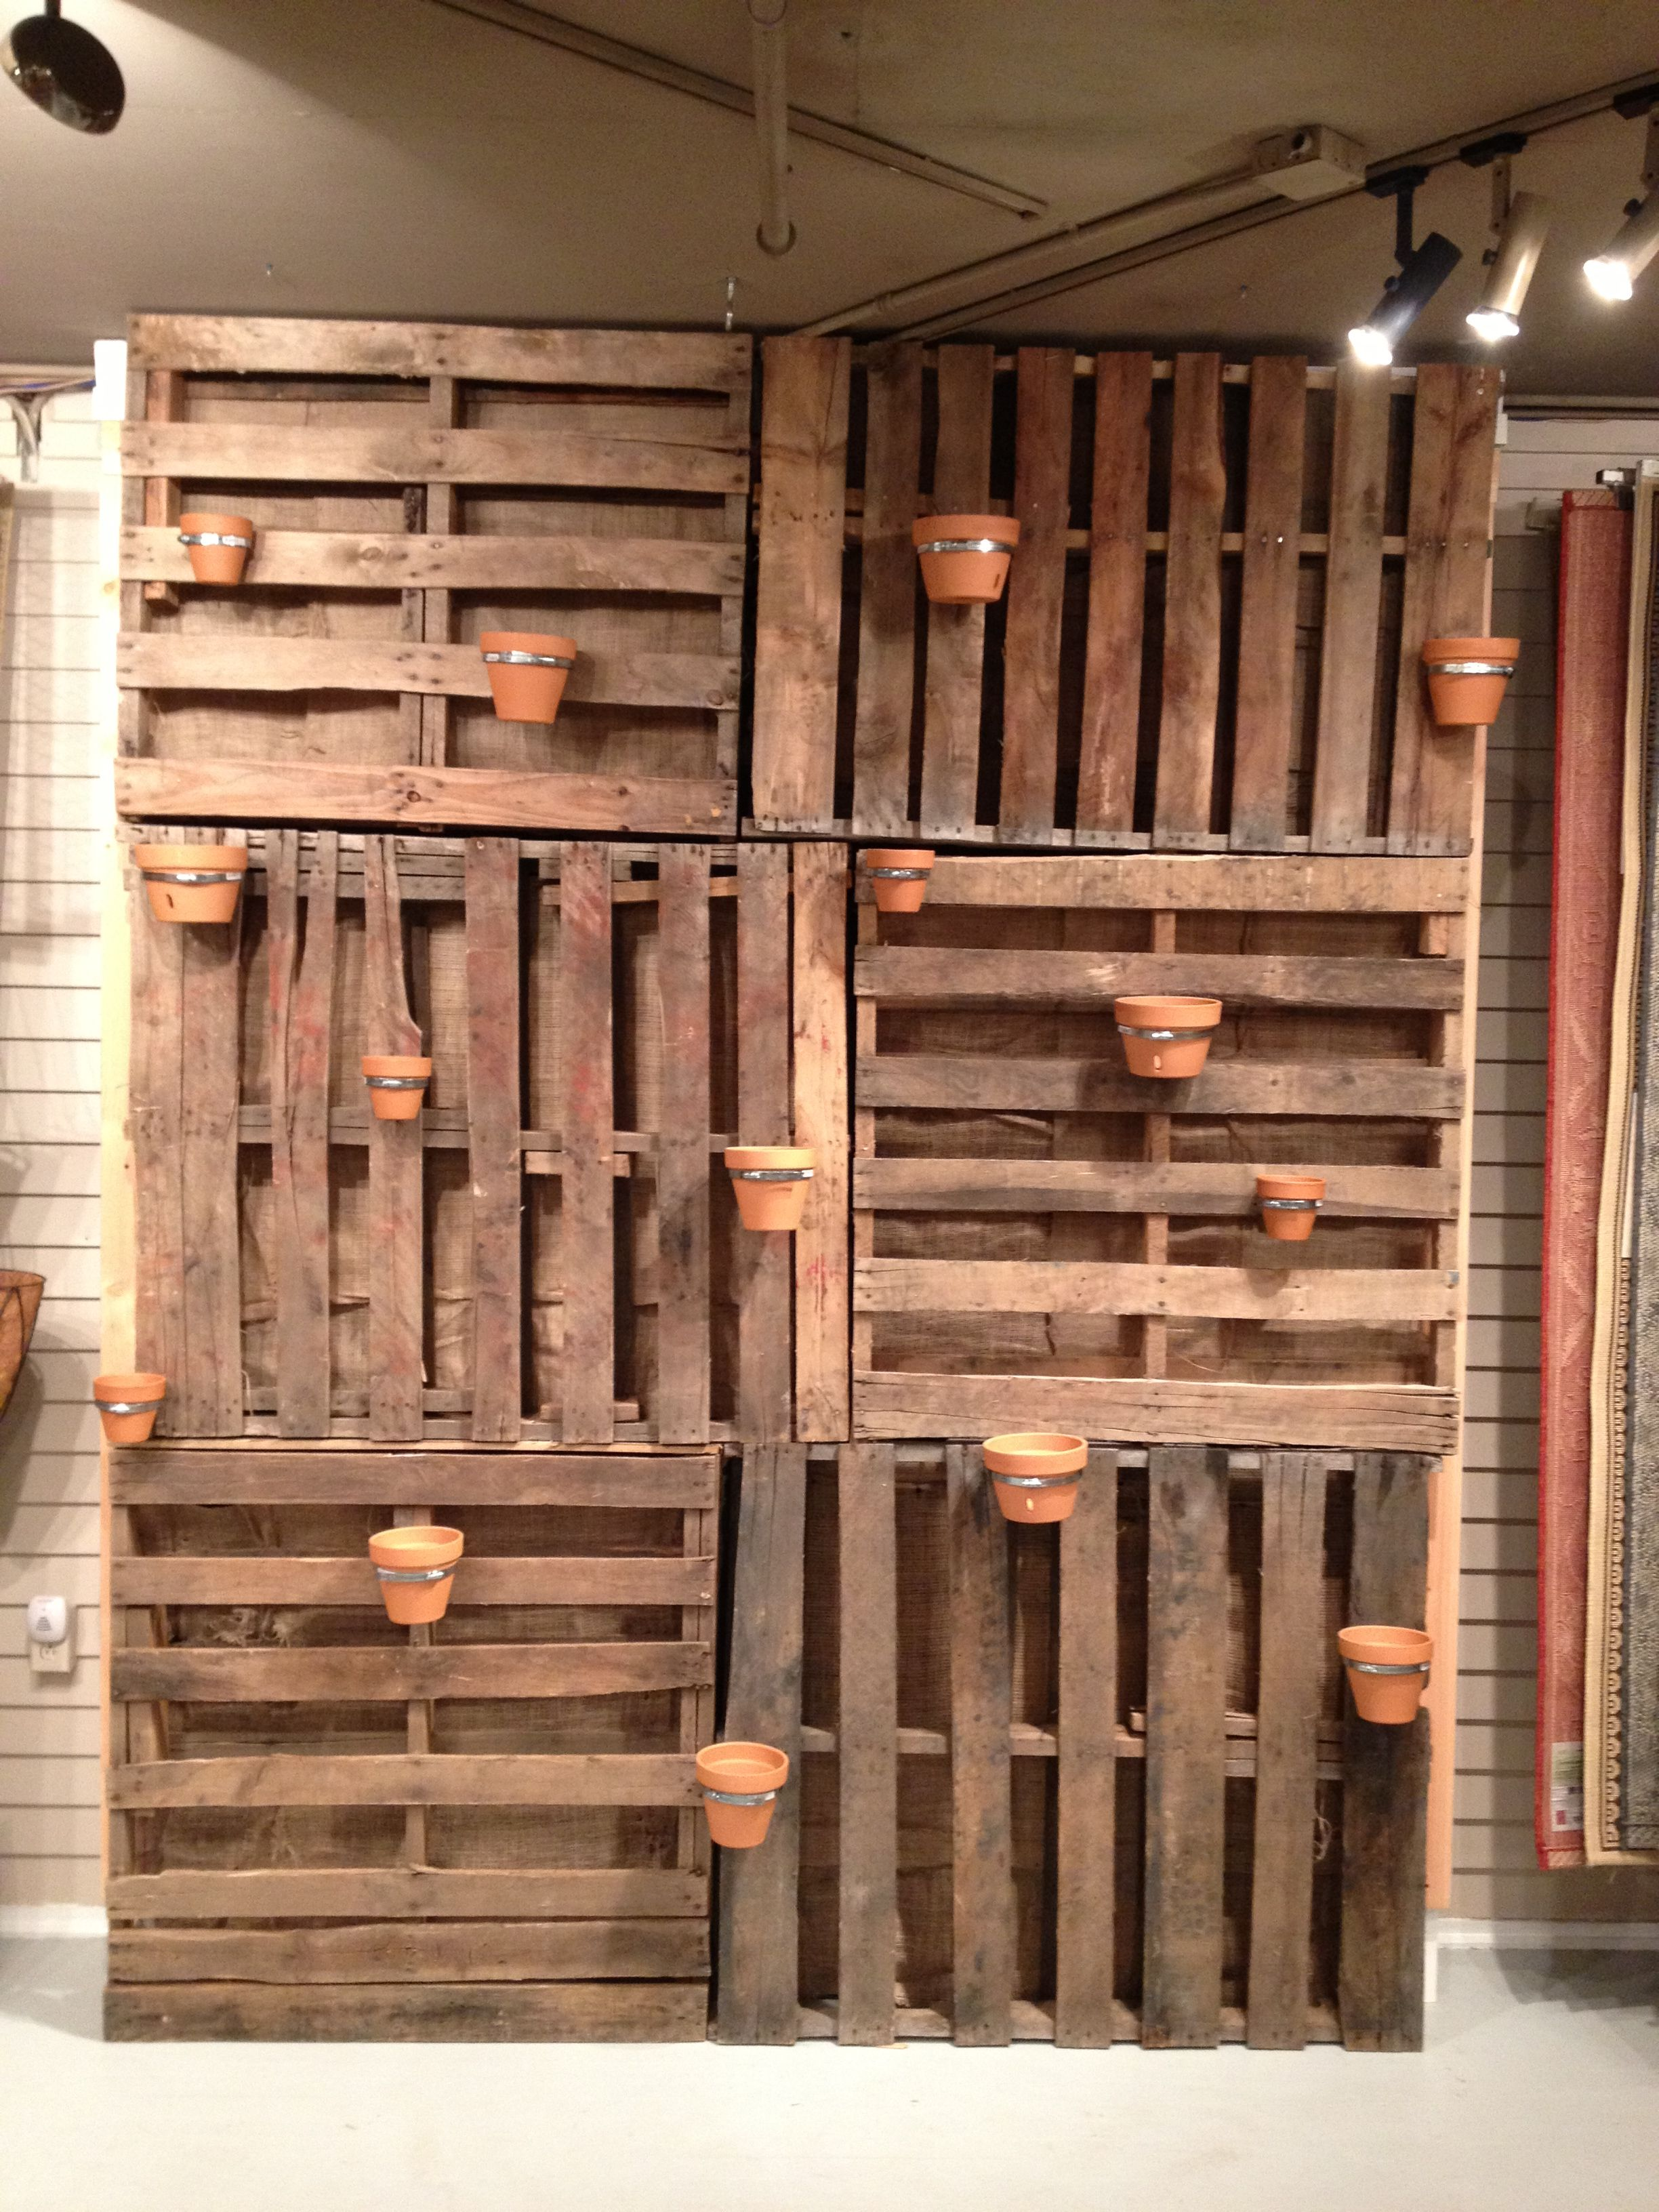 Garden wall made from pallets added air duct straps to for Wood pallet privacy walls